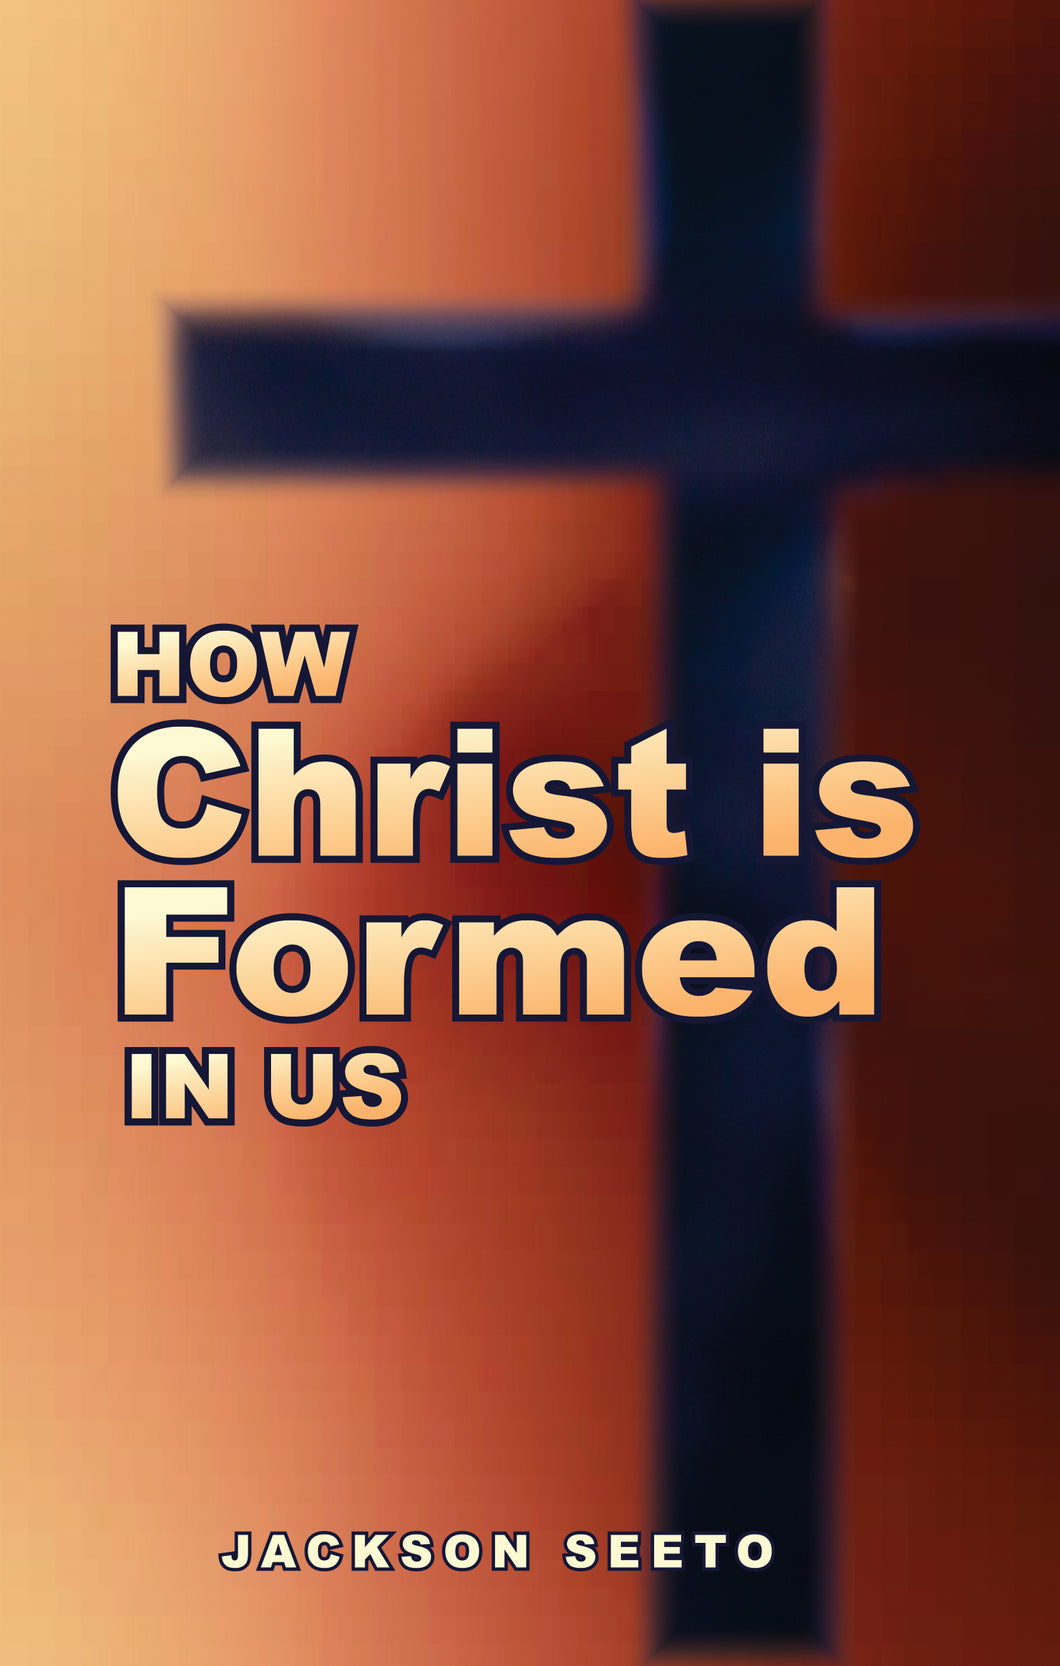 How Christ is Formed in Us